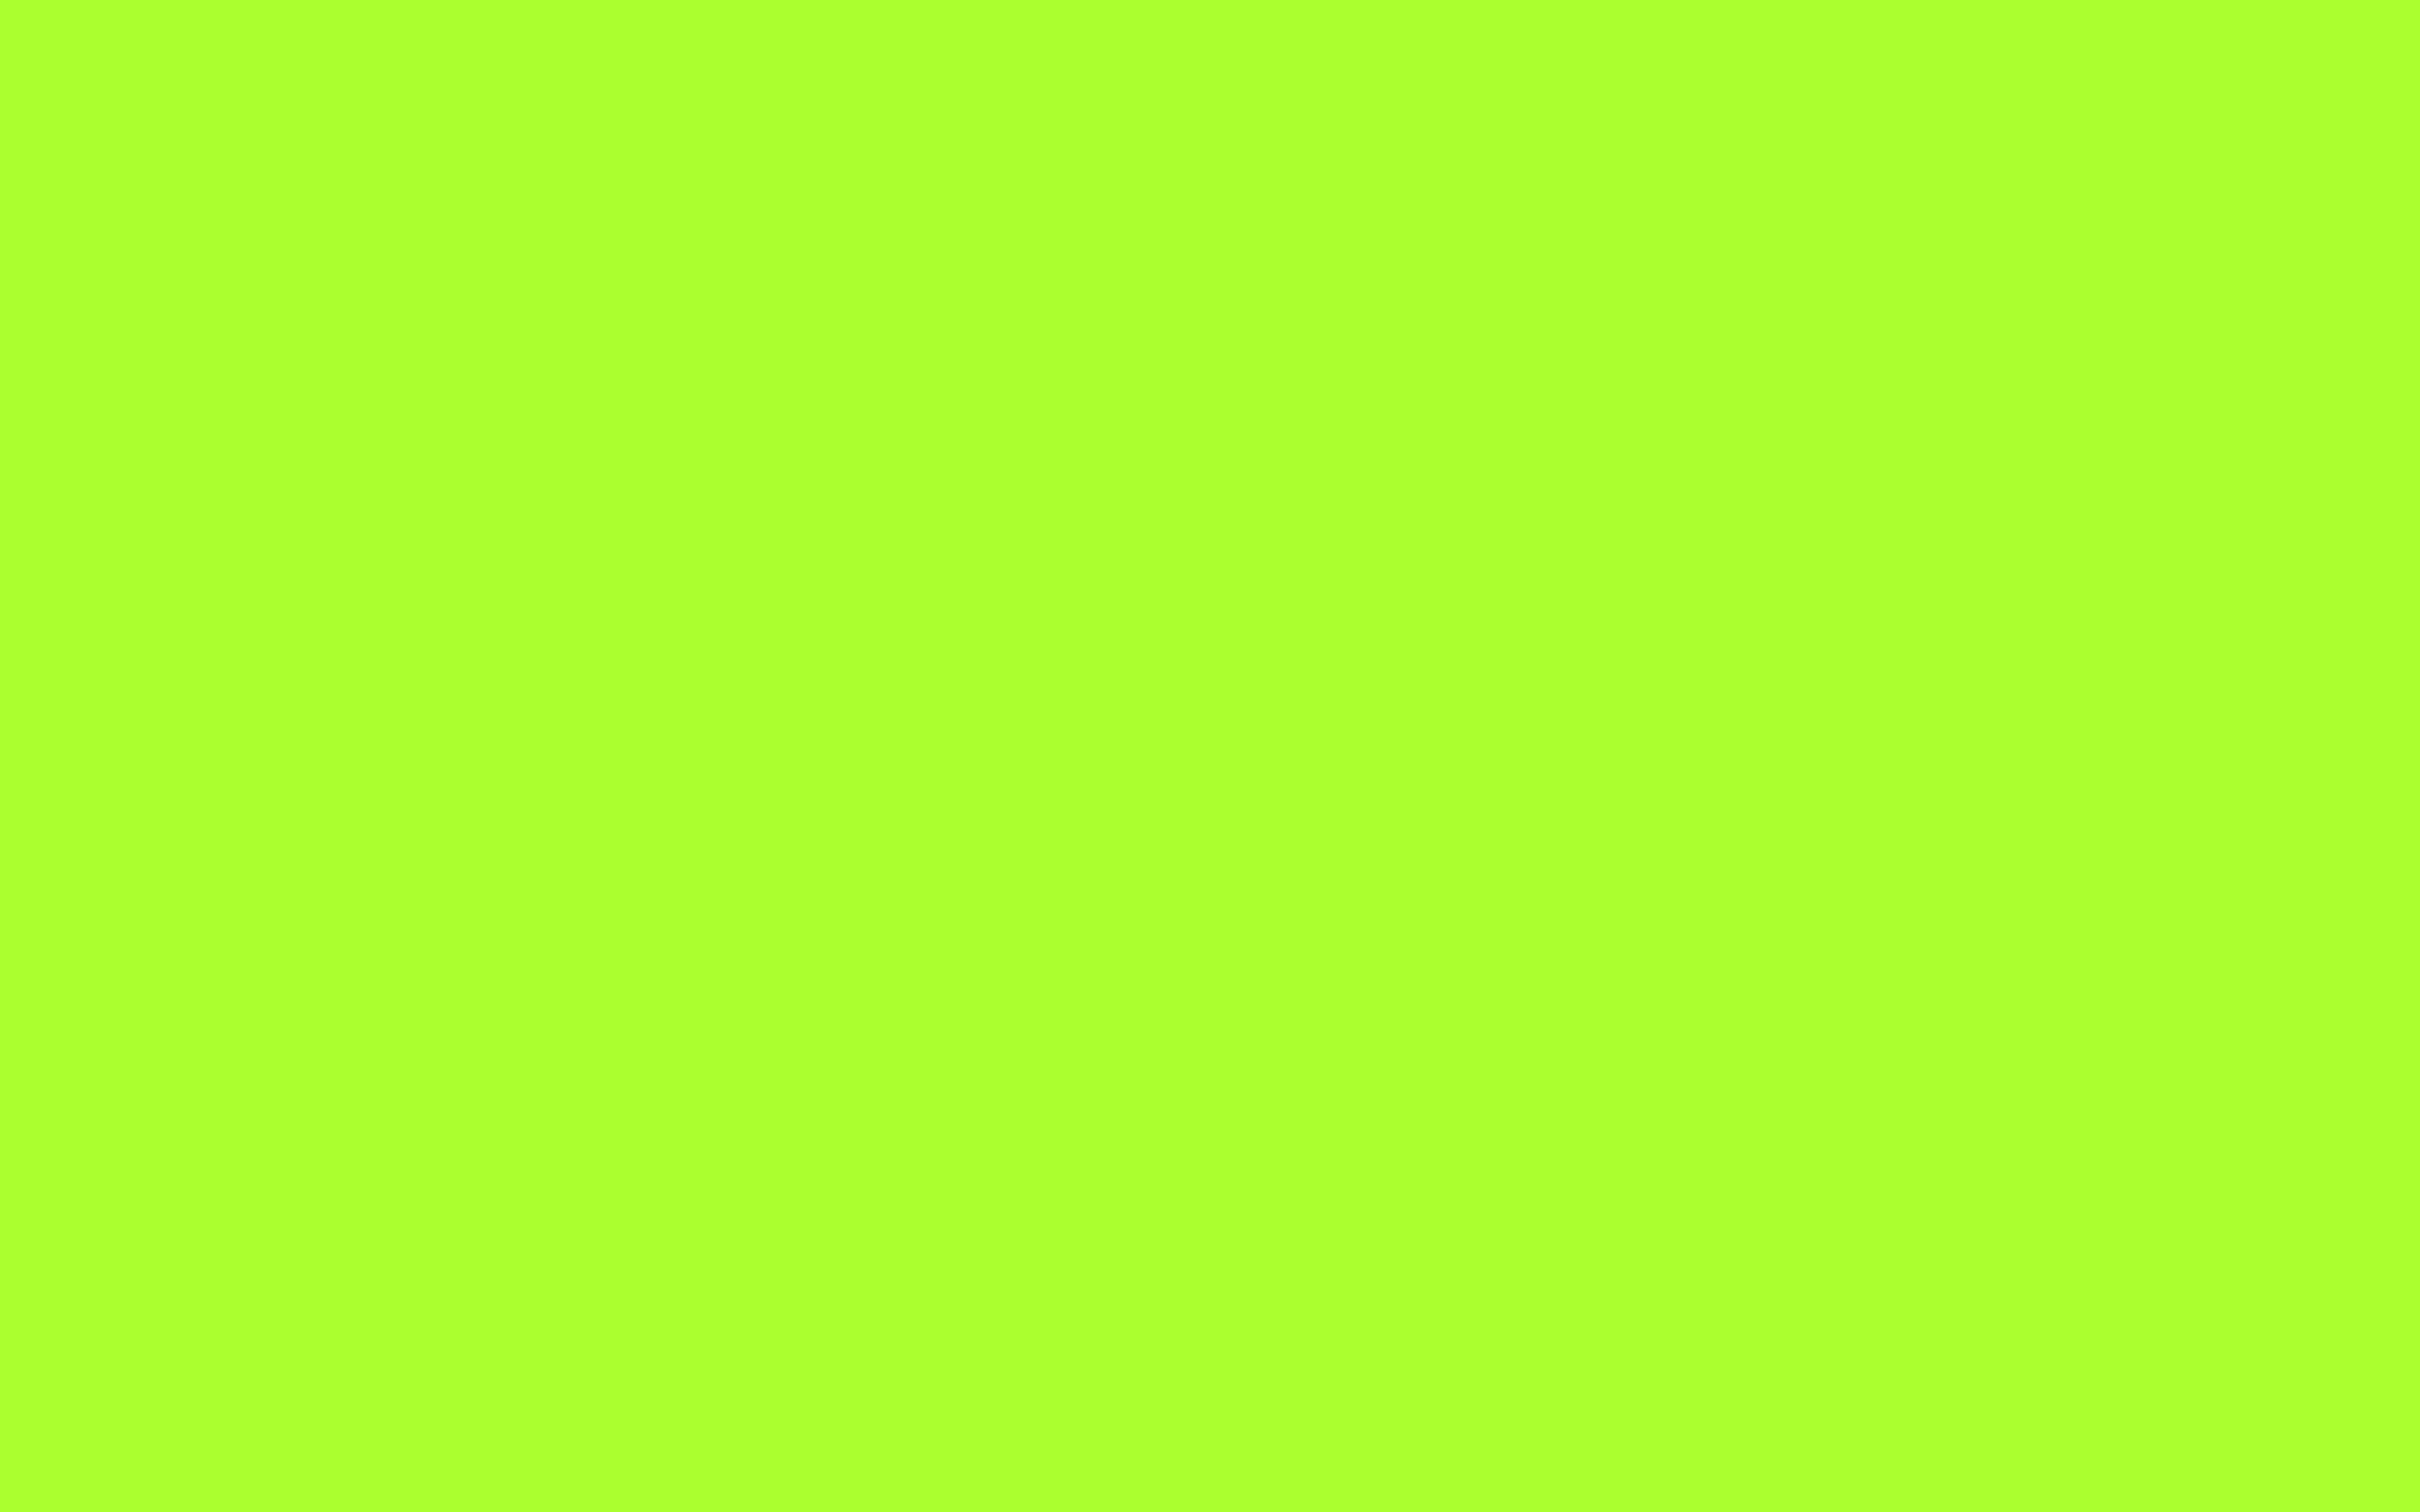 2880x1800 greenyellow solid color background